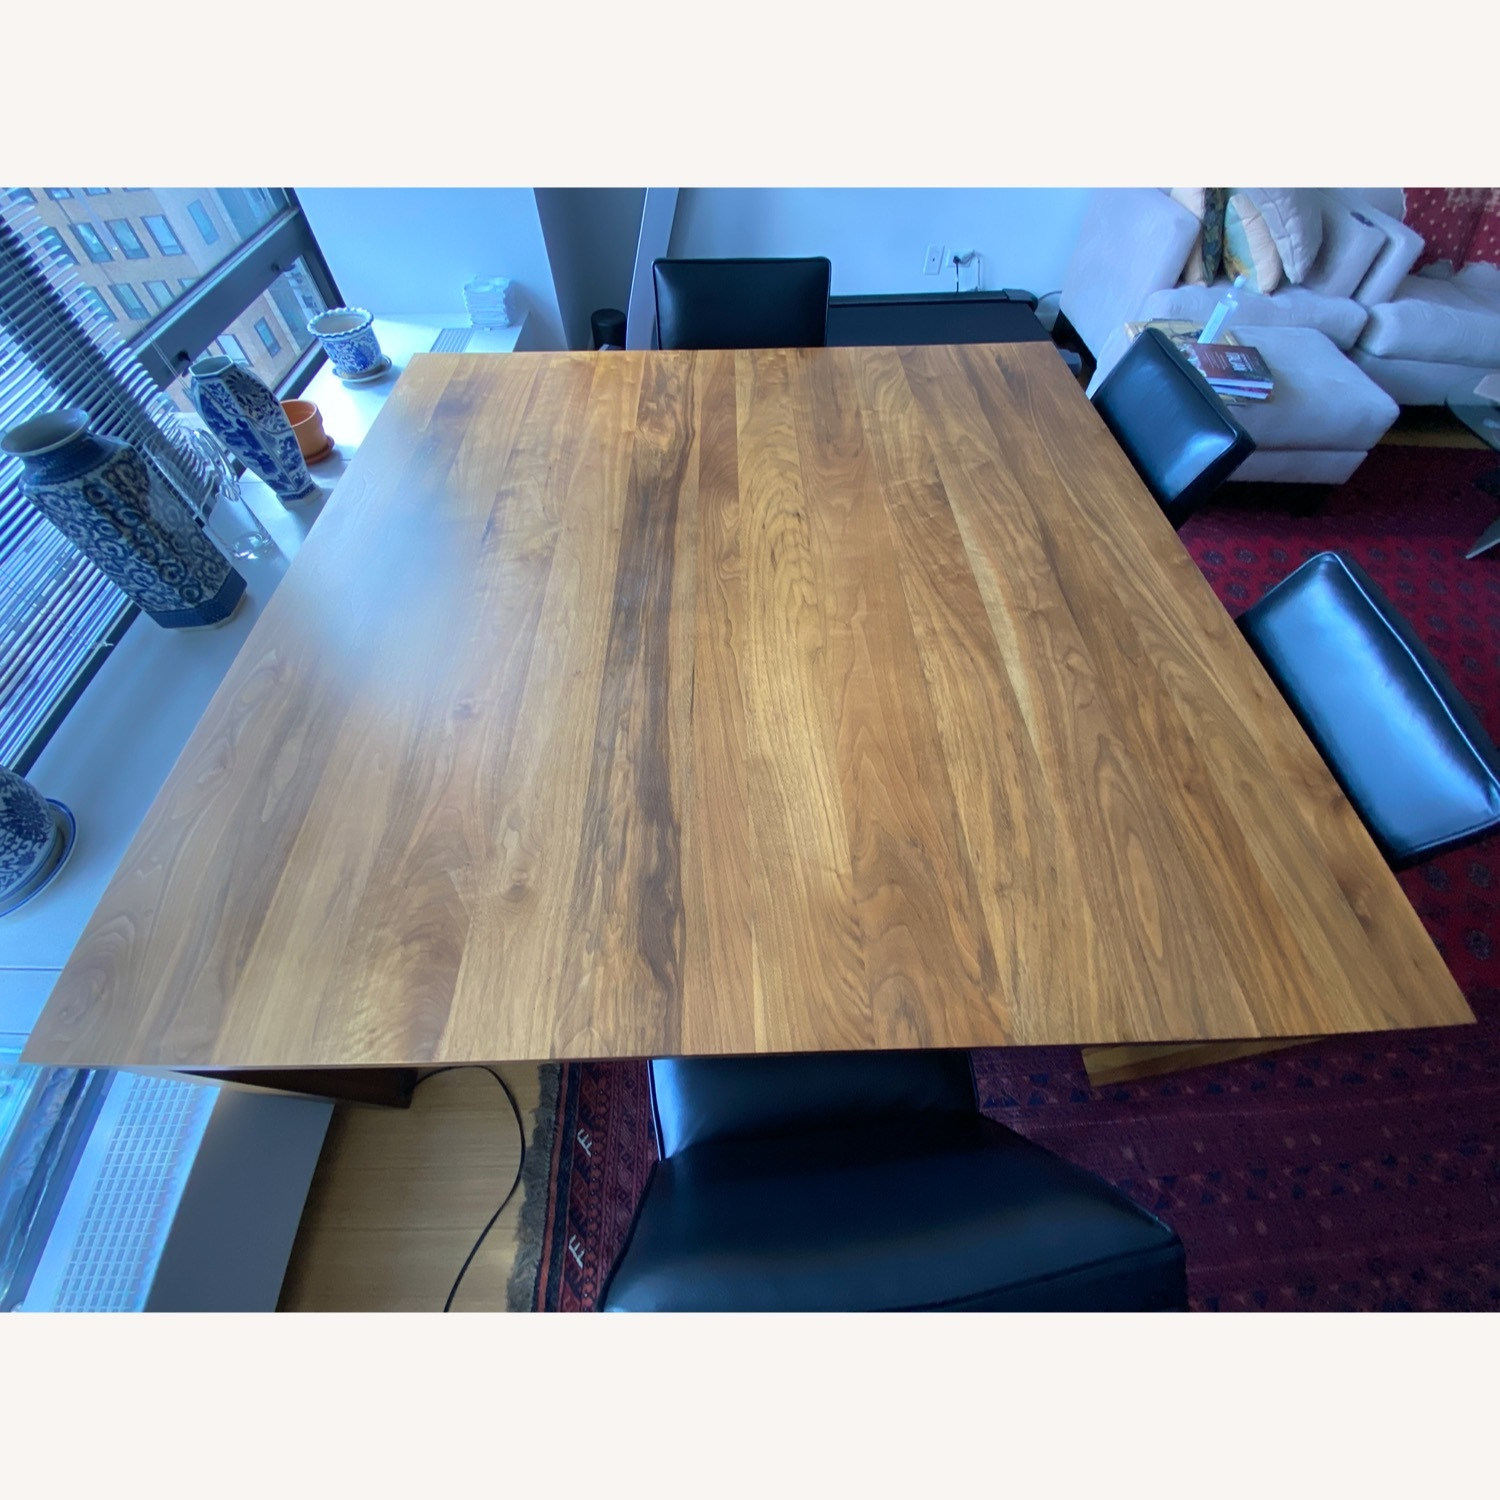 Room & Board Solid Walnut Dining Table - image-2